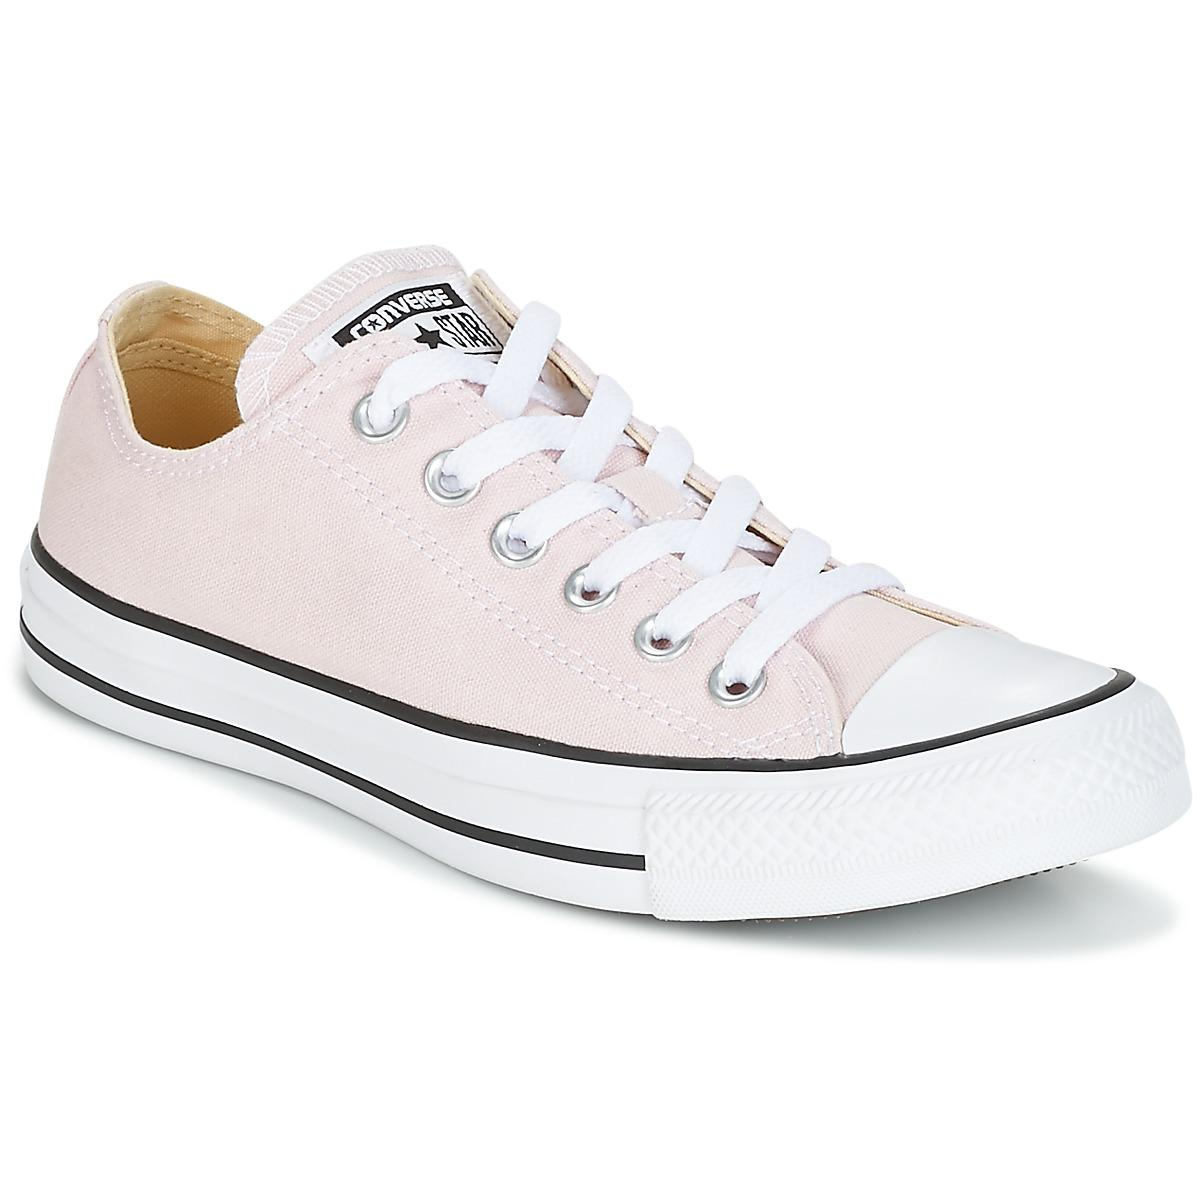 04f26b7a21eb7d Converse Chuck Taylor All Star Ox Seasonal Colors Shoes (trainers ...